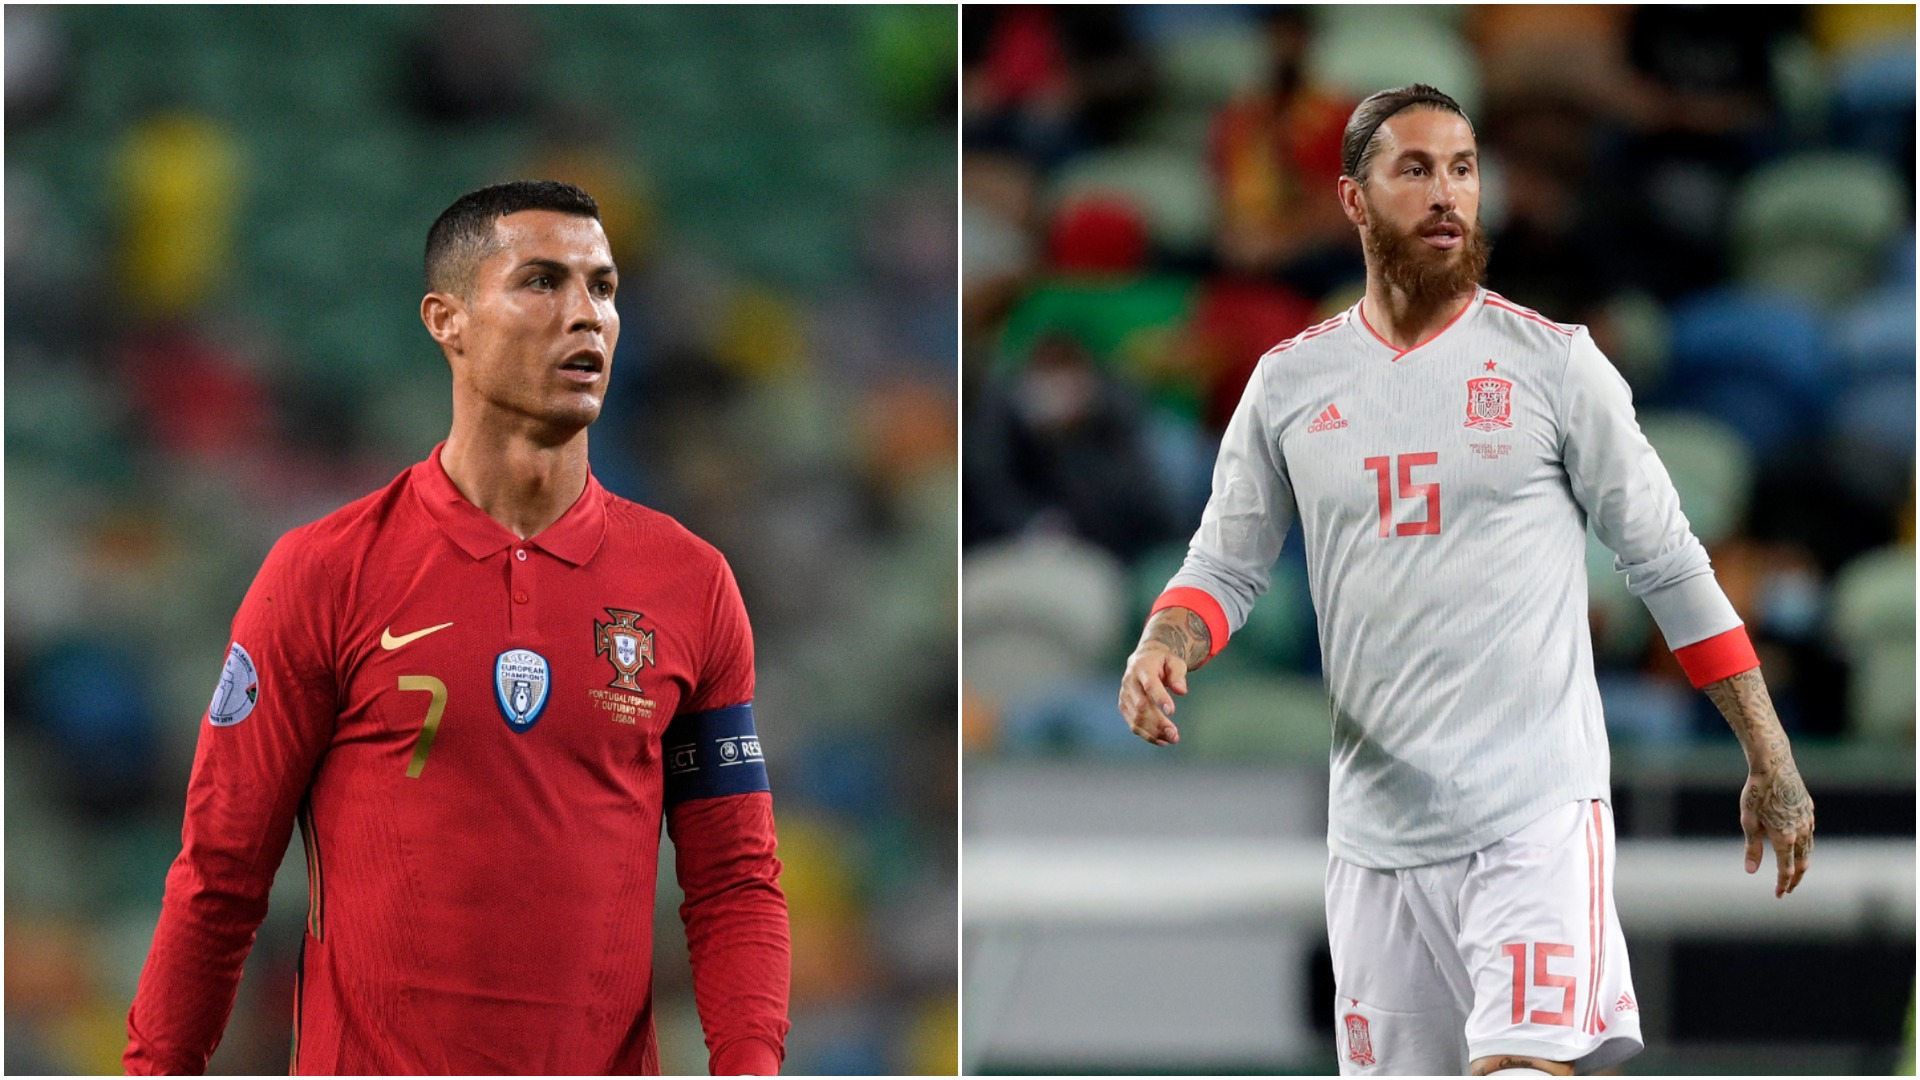 Friends reunited – Ronaldo, Ramos and Pepe reconnect after Portugal v Spain